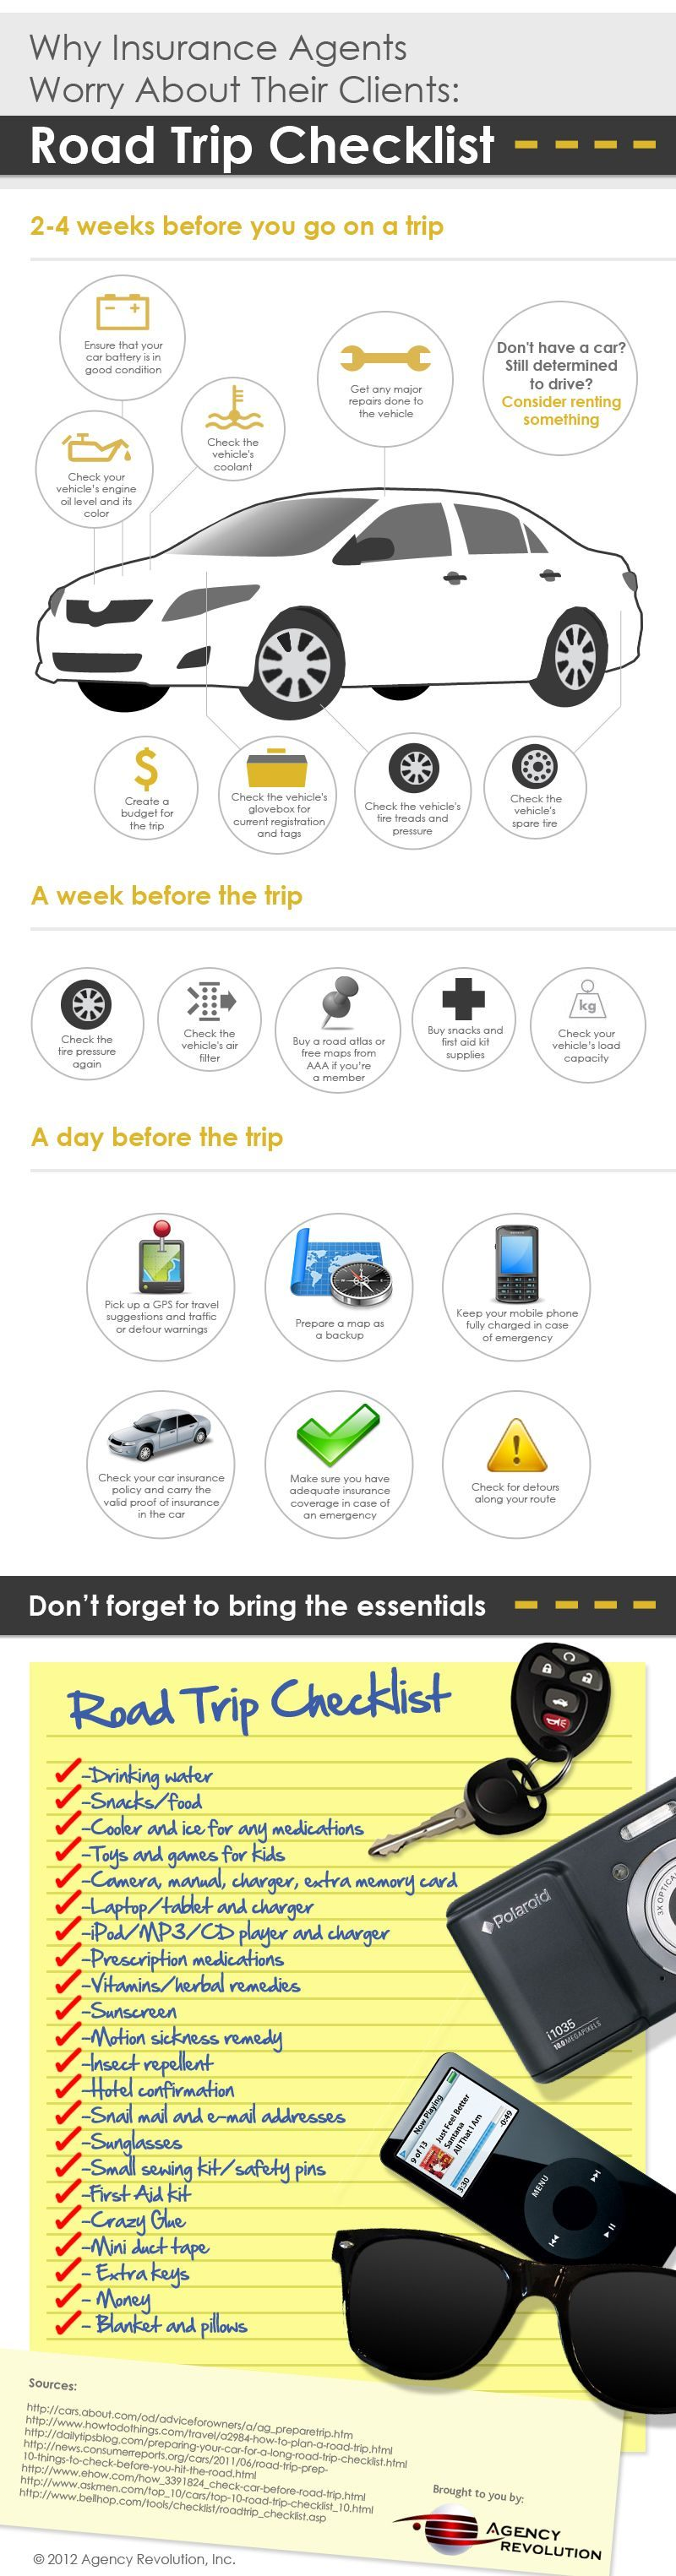 the road trip checklist infographic